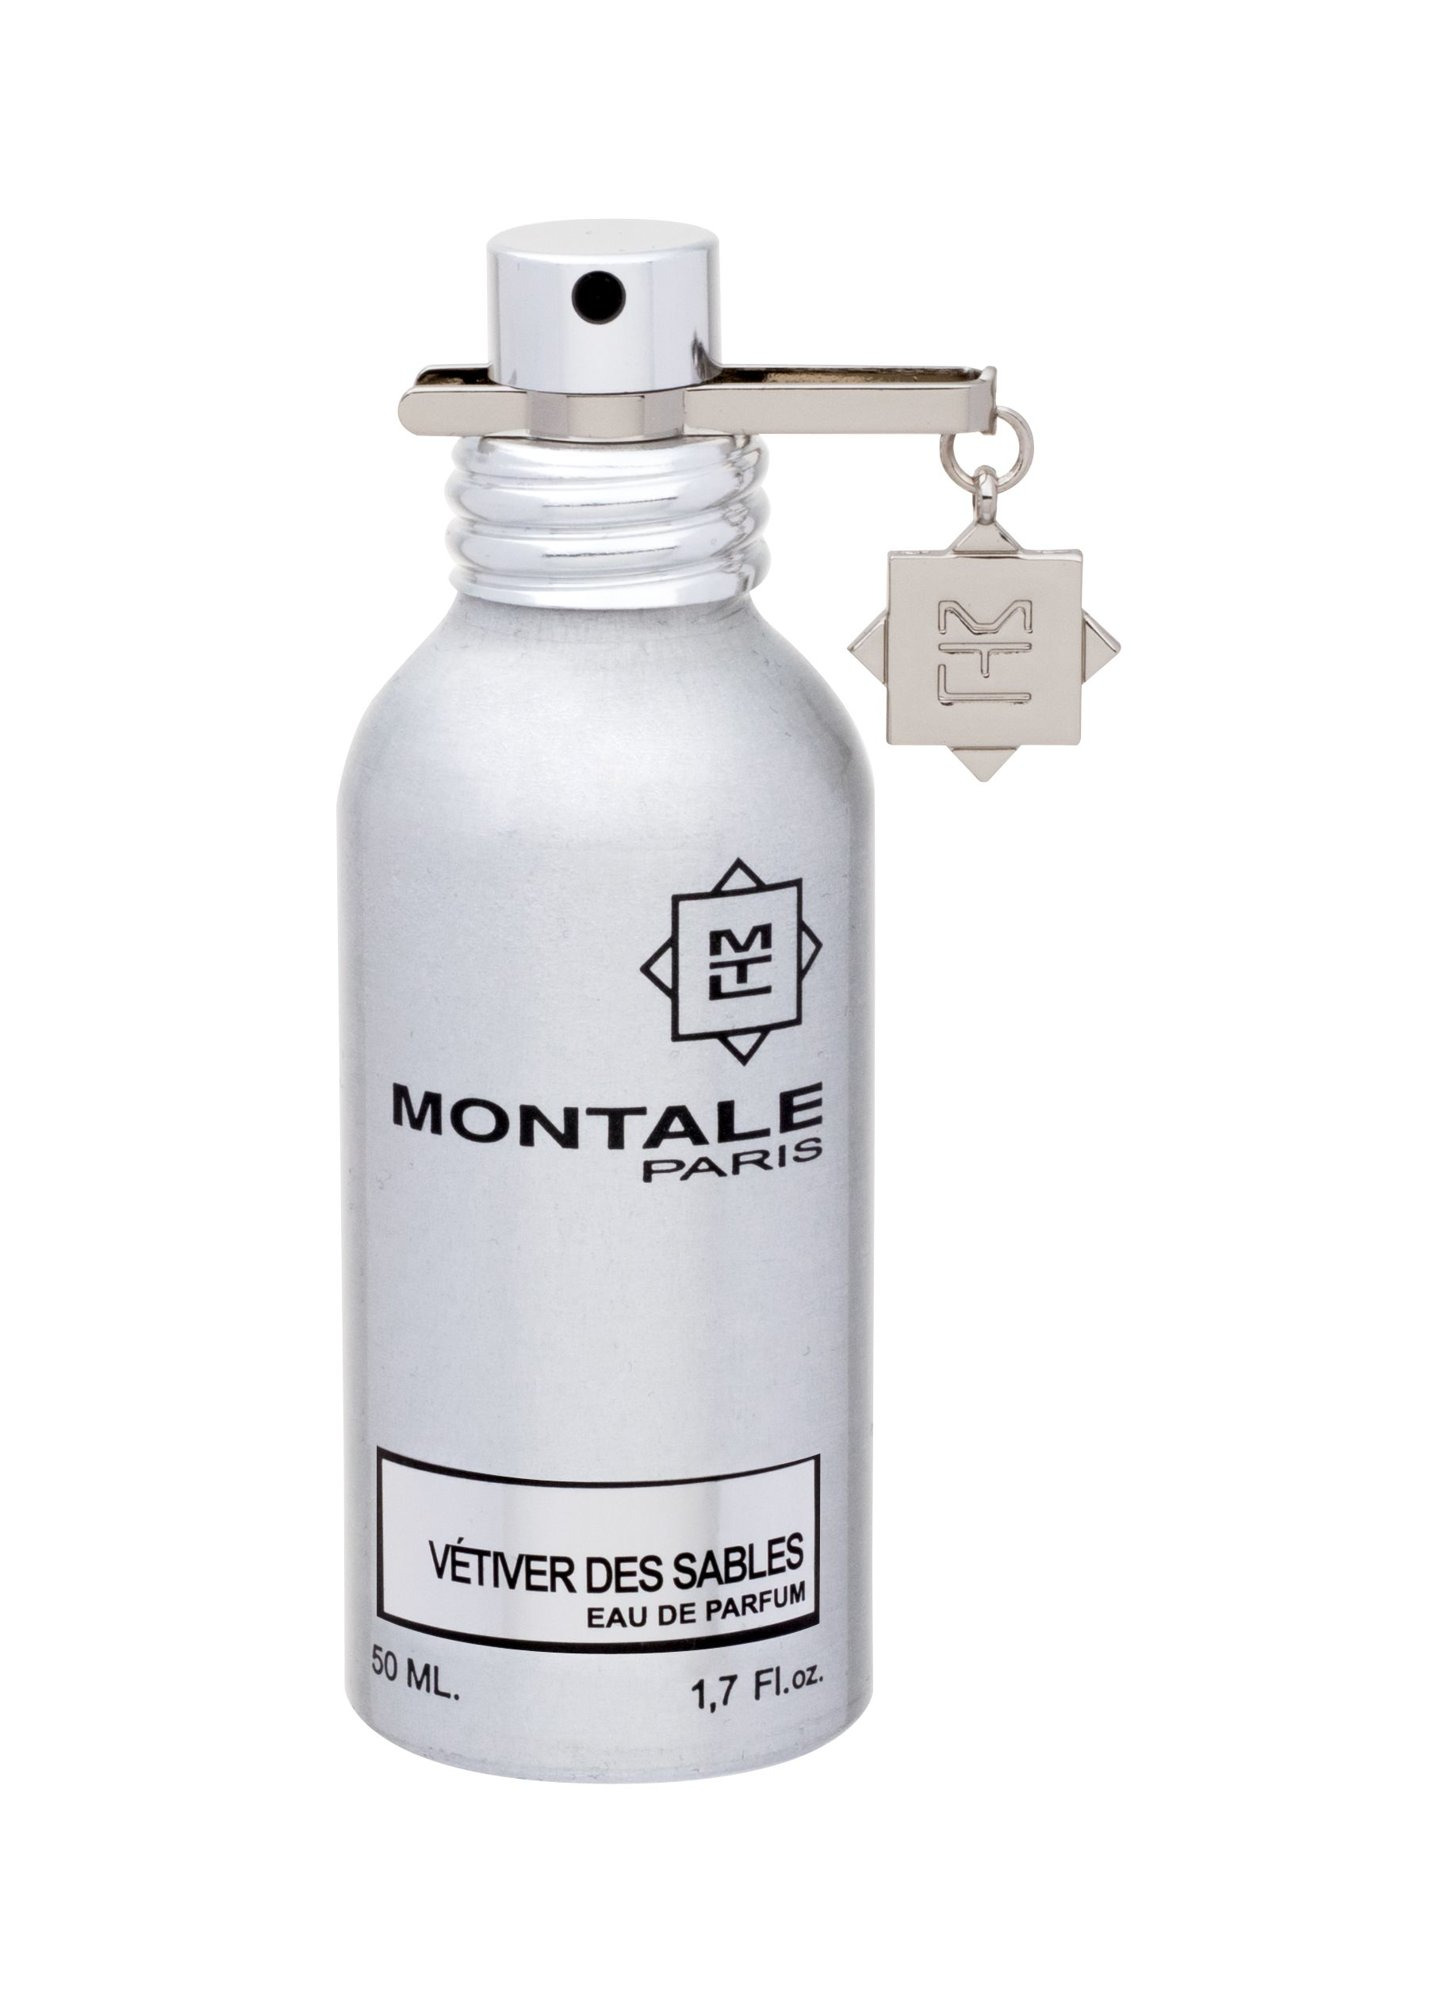 Montale Paris Vetiver Des Sables EDP 50ml